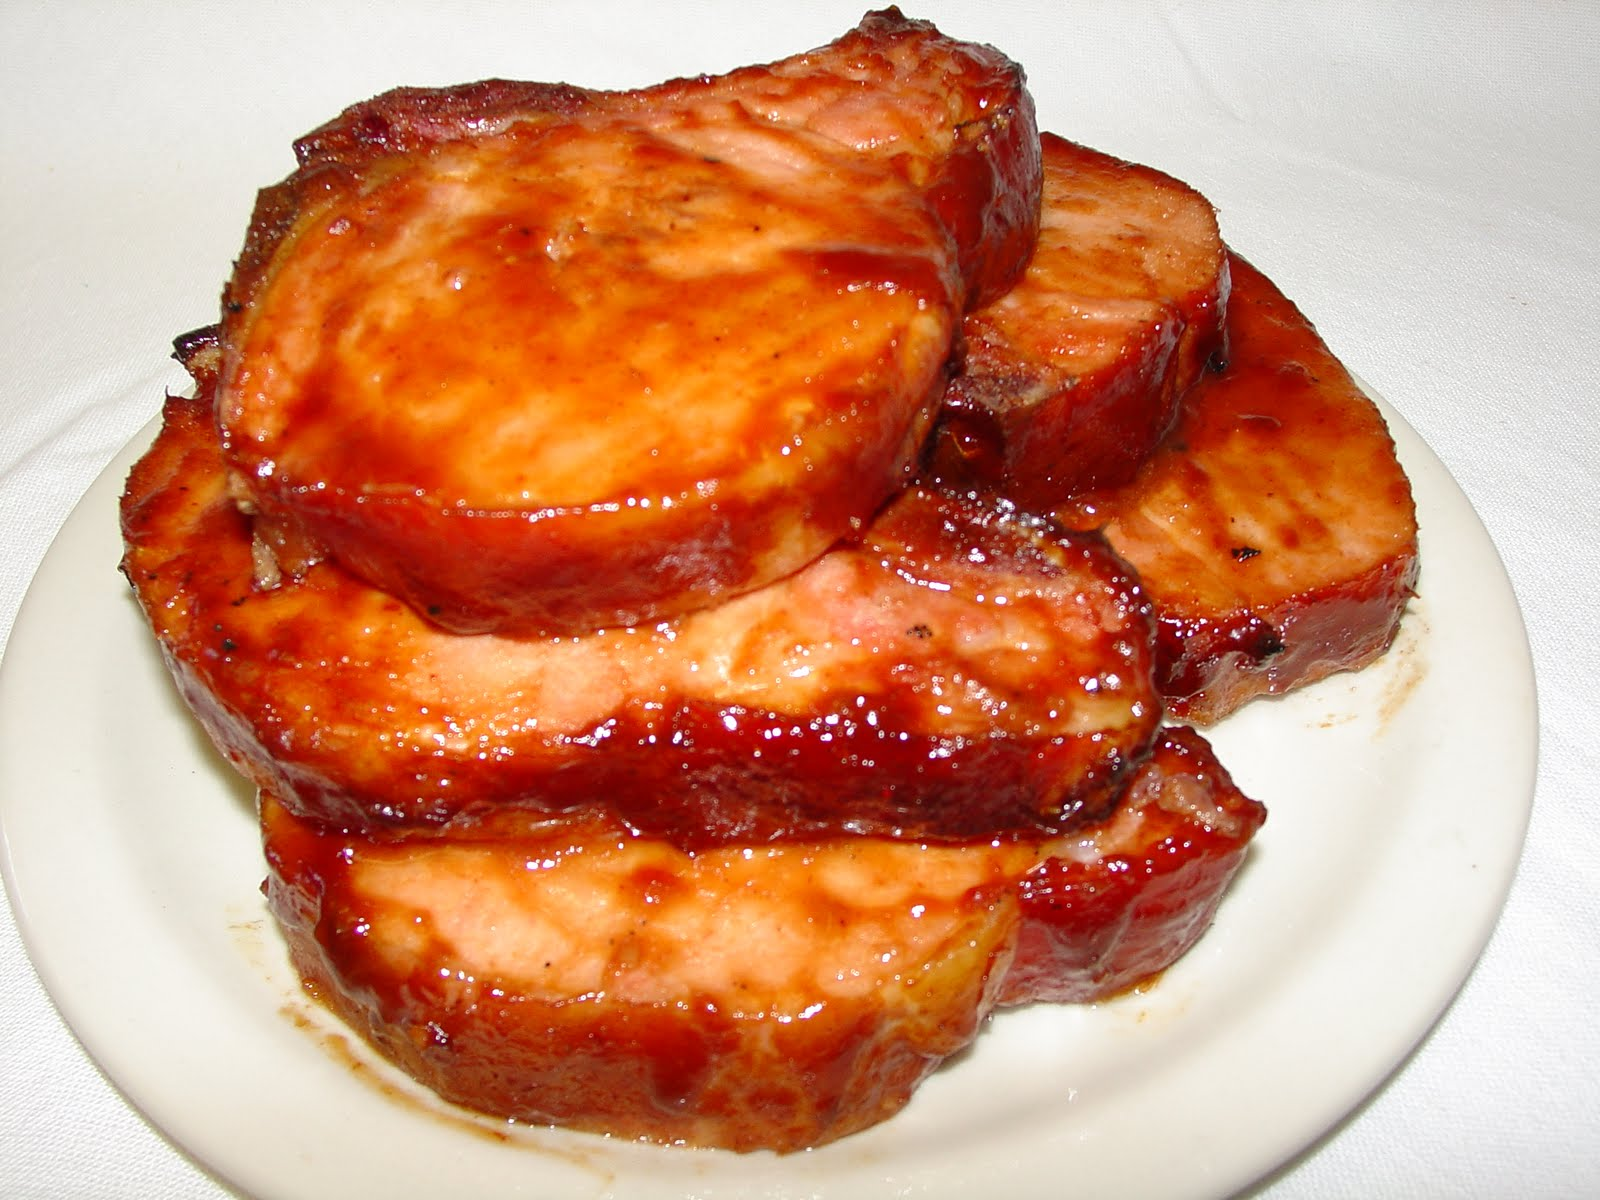 How To Cook Pork Chops Baked